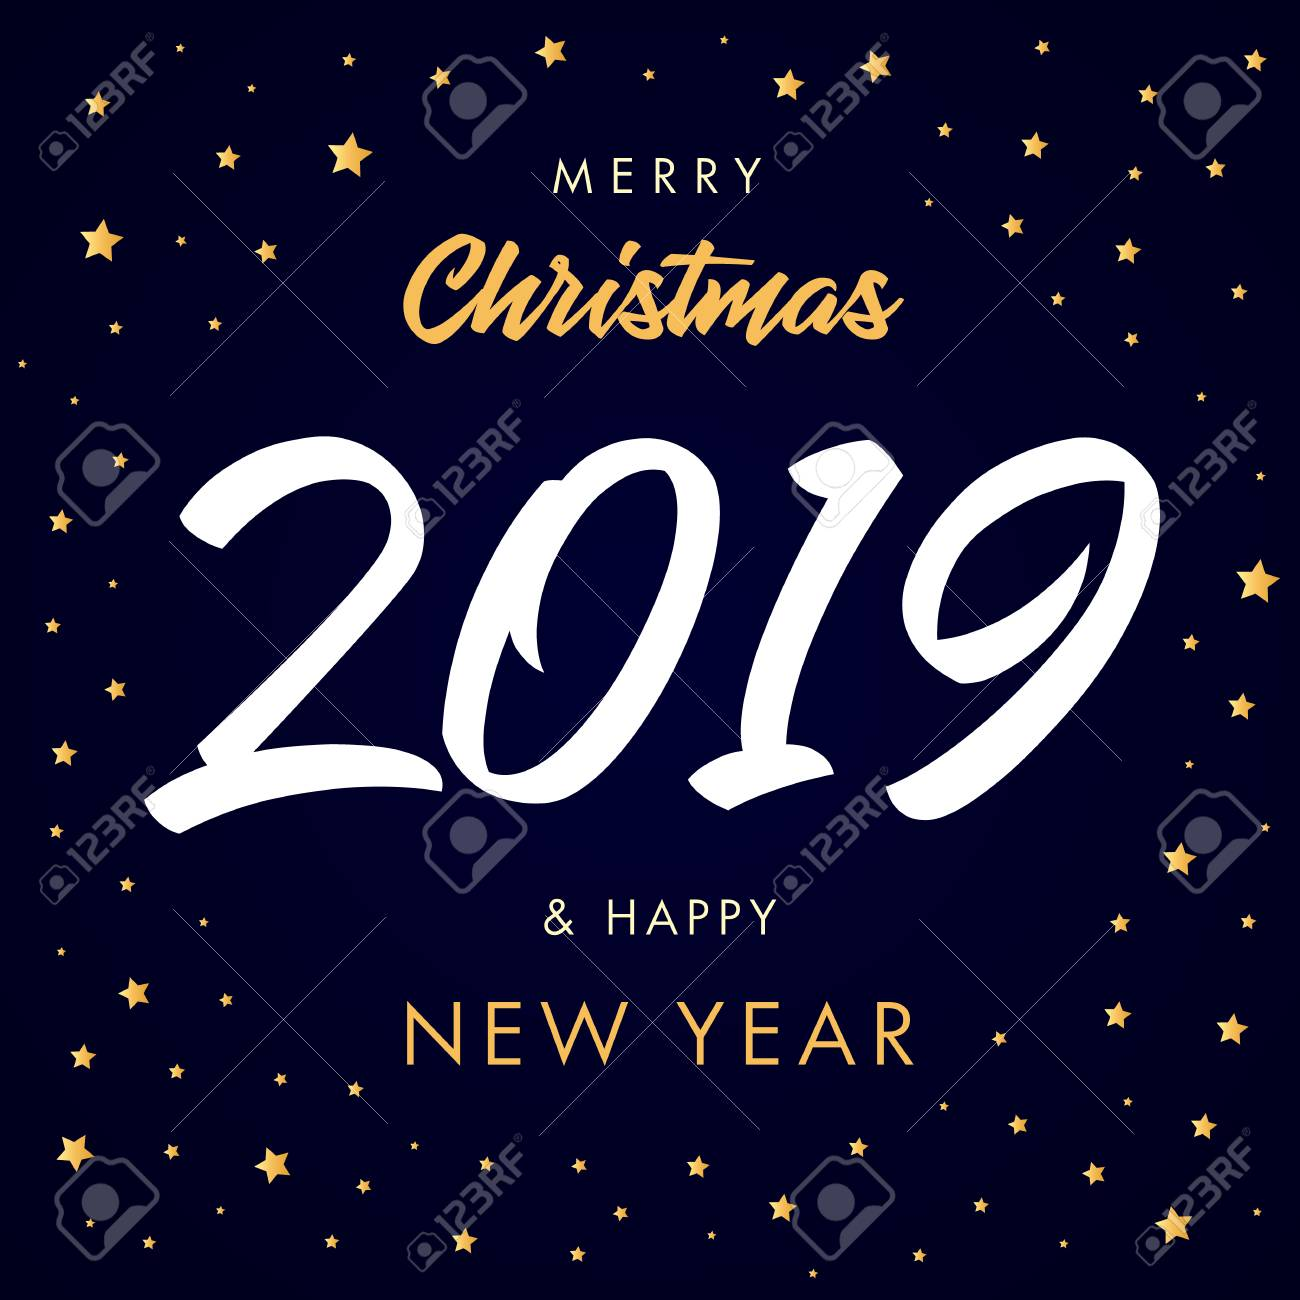 Merry Christmas 2019.Merry Christmas Calligraphy 2019 And Happy New Year Greeting